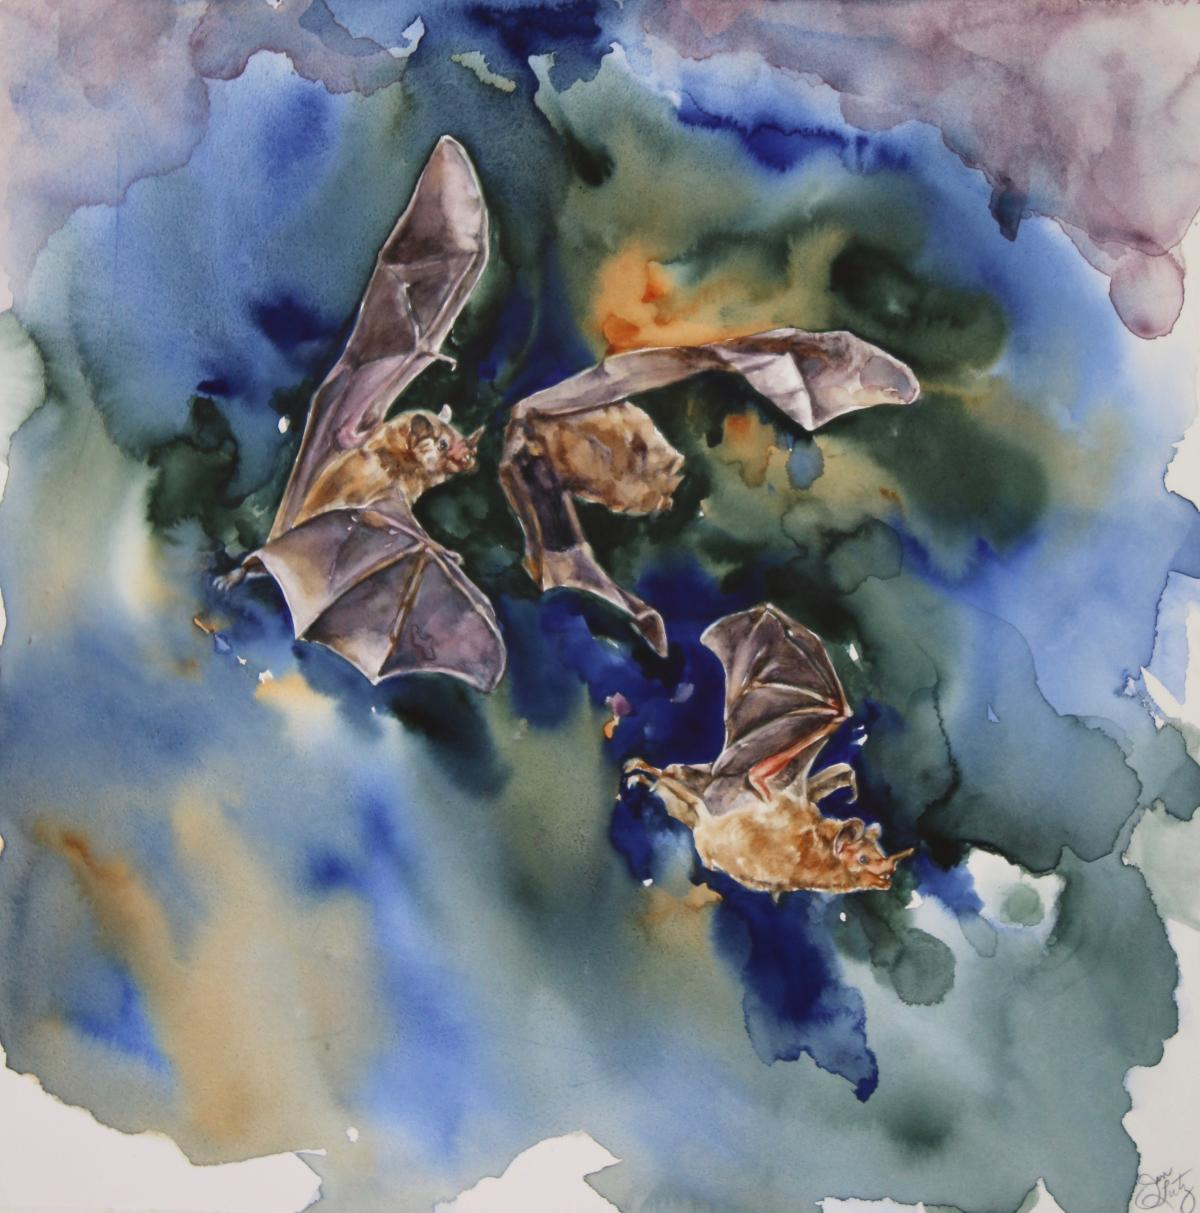 Tropical Bats | Wallhanging by Jan Lutz | Artists for Conservation 2020